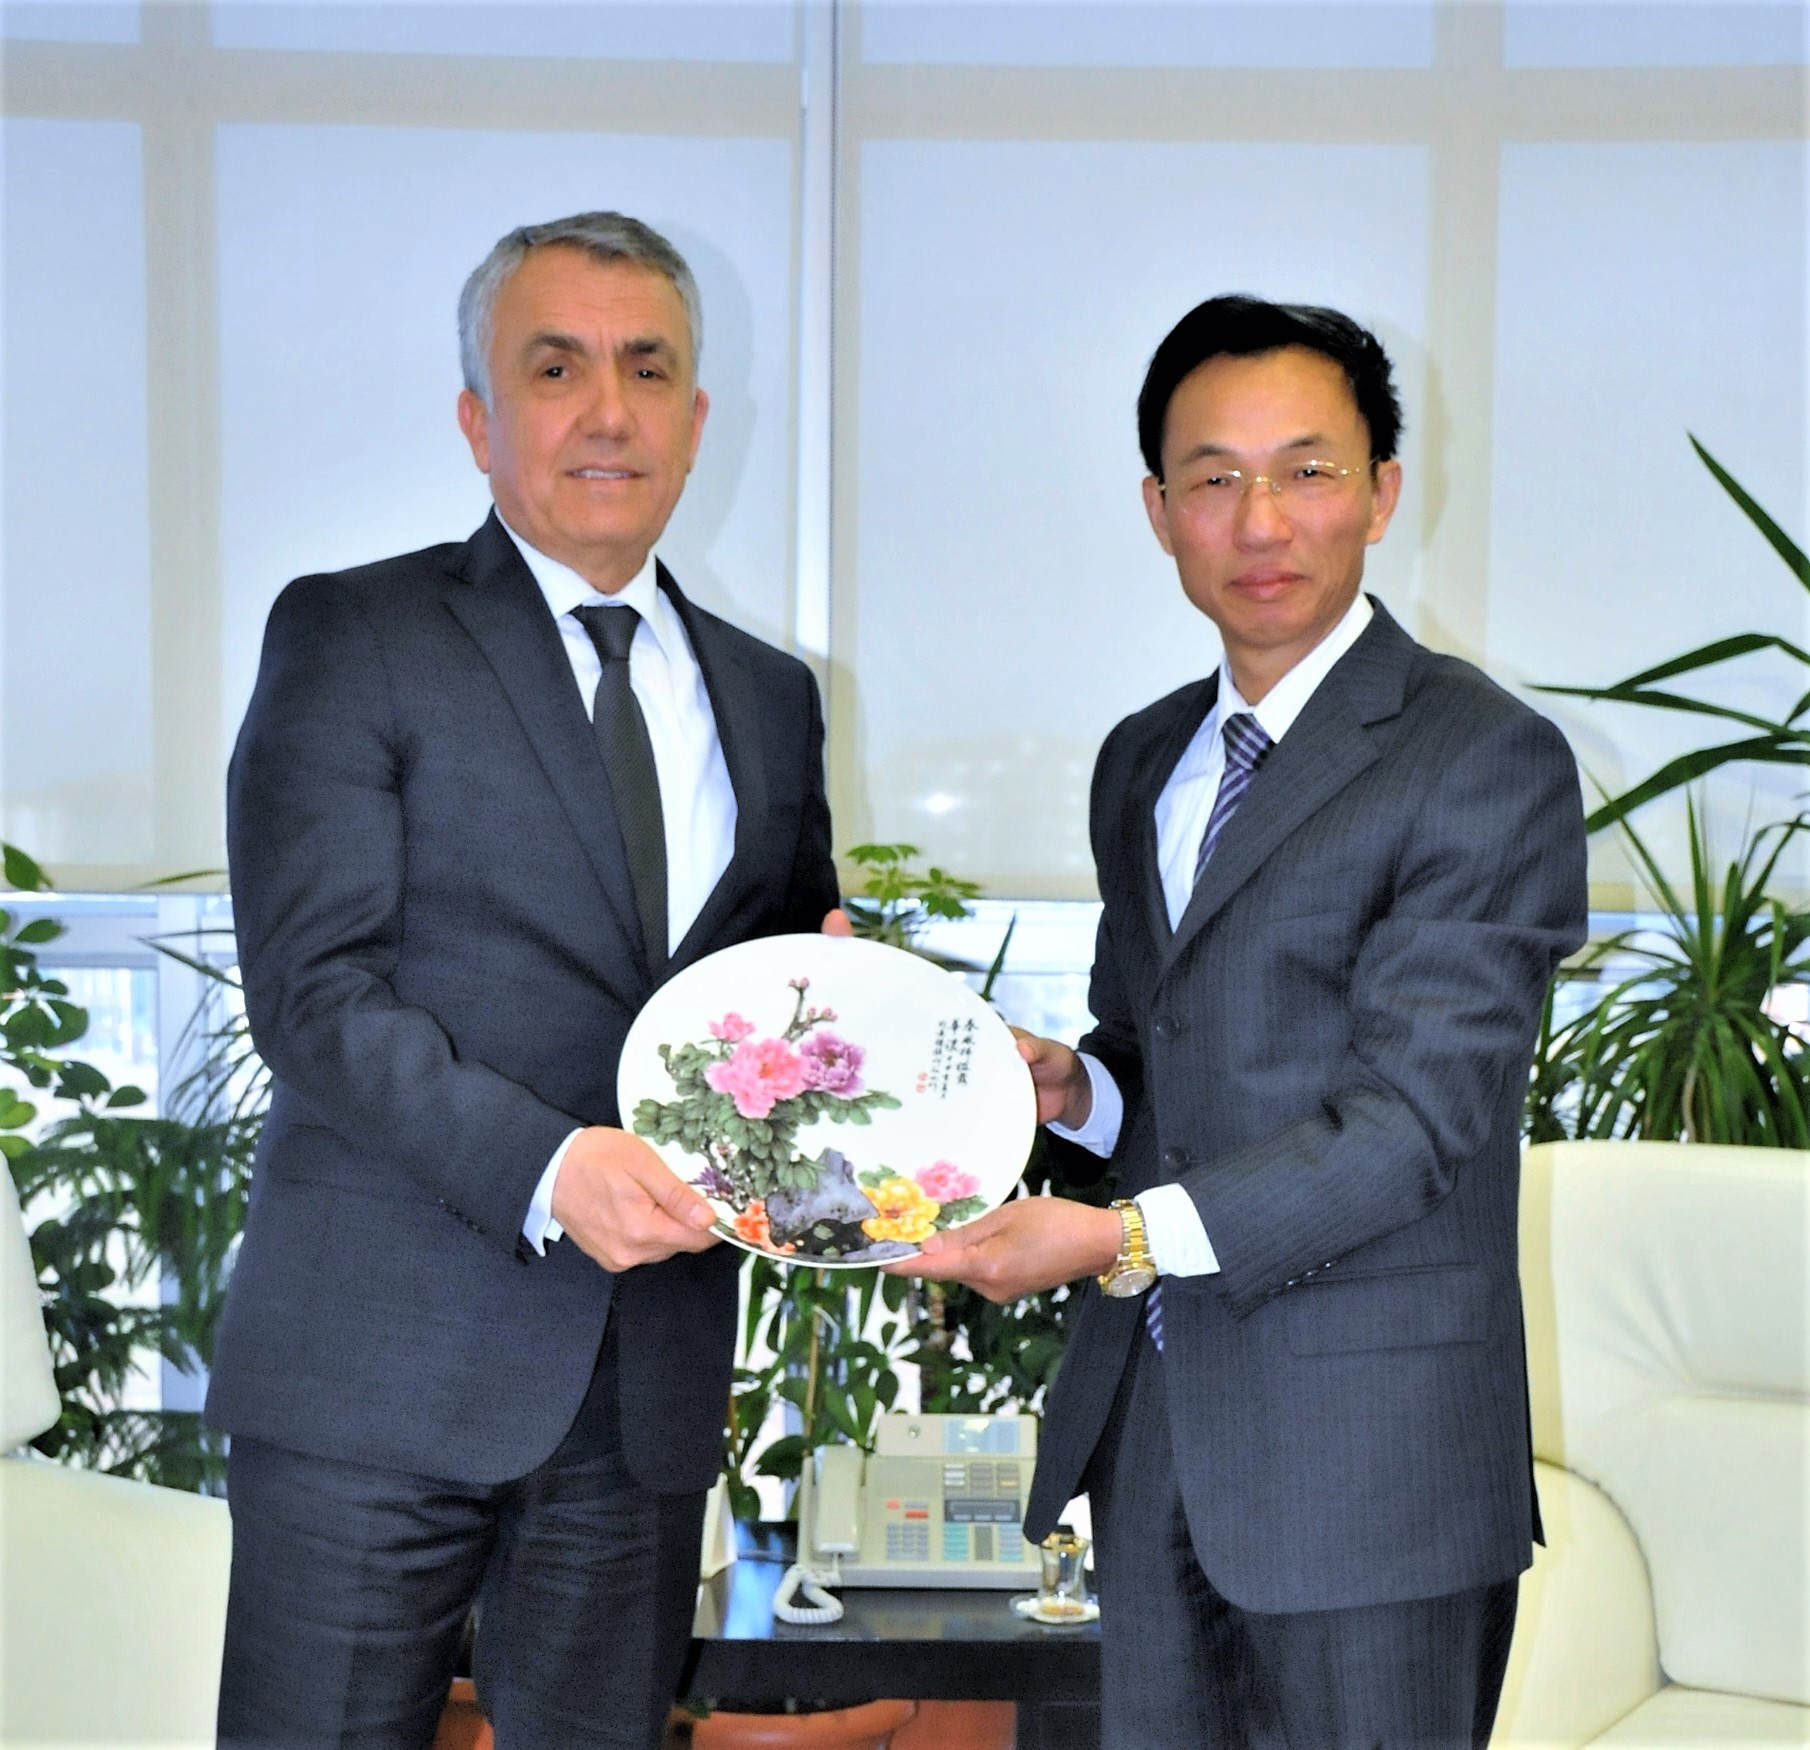 http://www.omu.edu.tr/sites/default/files/files/ambassador_of_the_peoples_republic_of_china_visits_rector_bilgic/dsc_0023.jpg